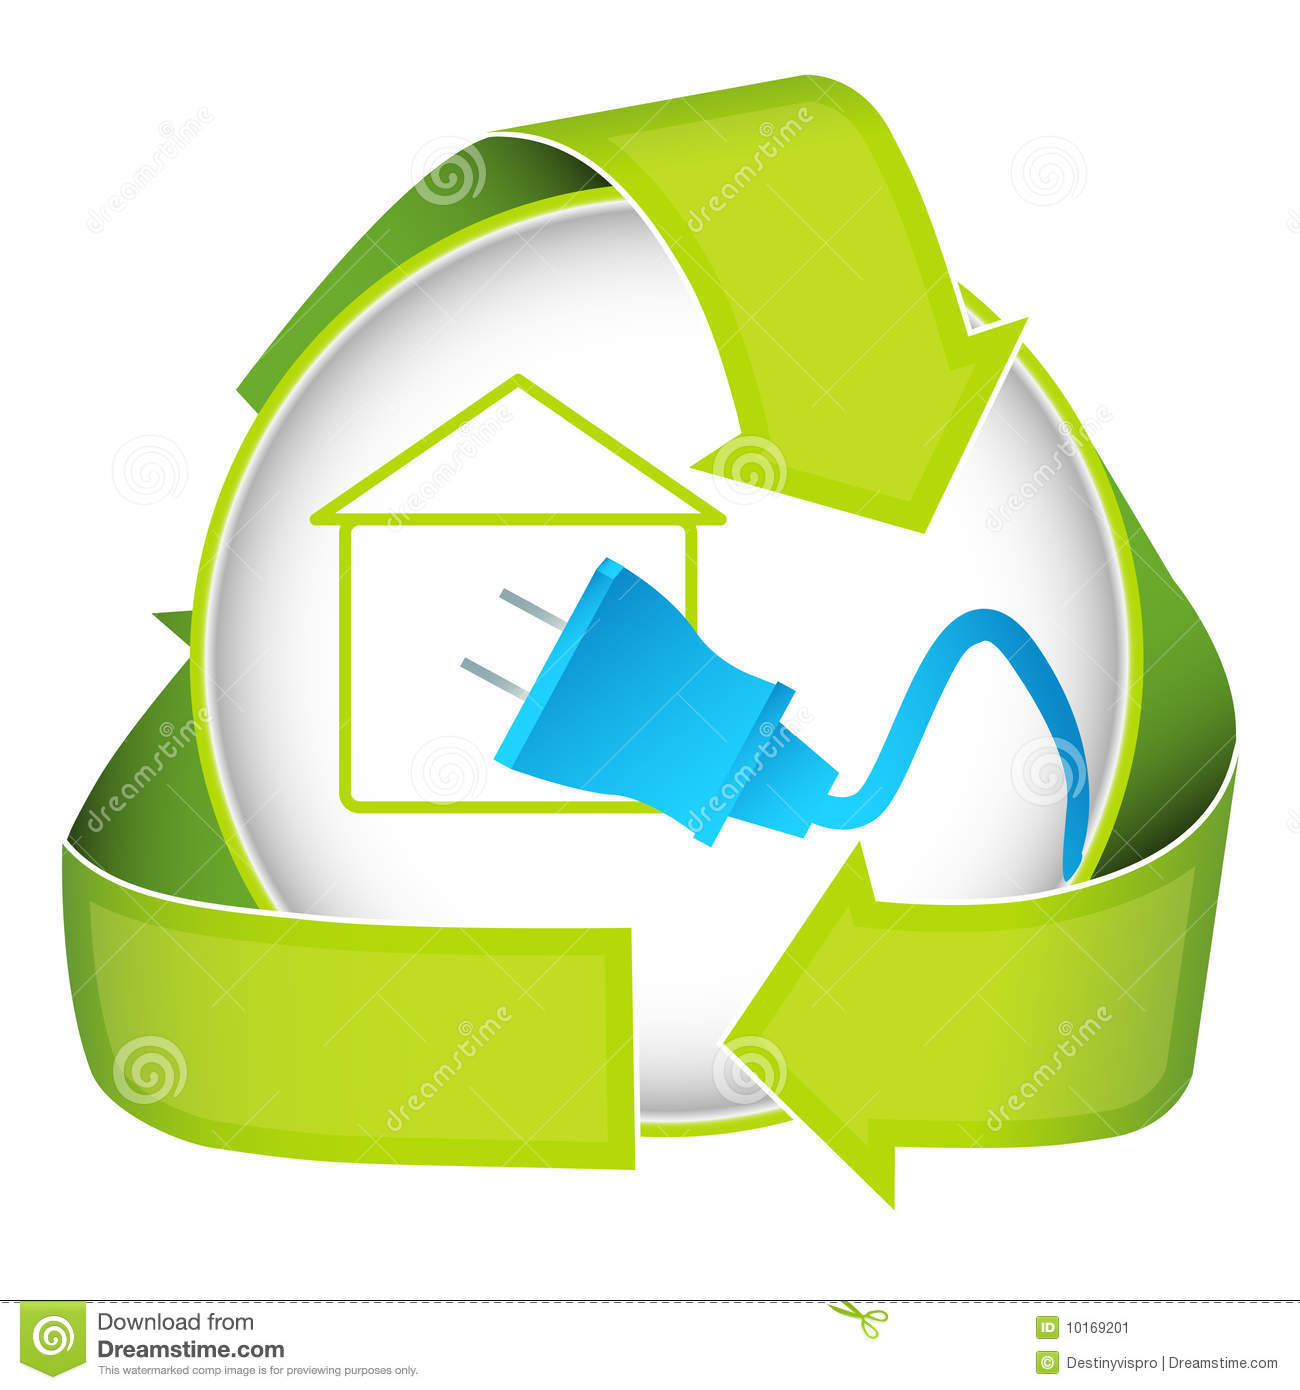 Green Home Electricity Icon Stock Image - Image: 10169201